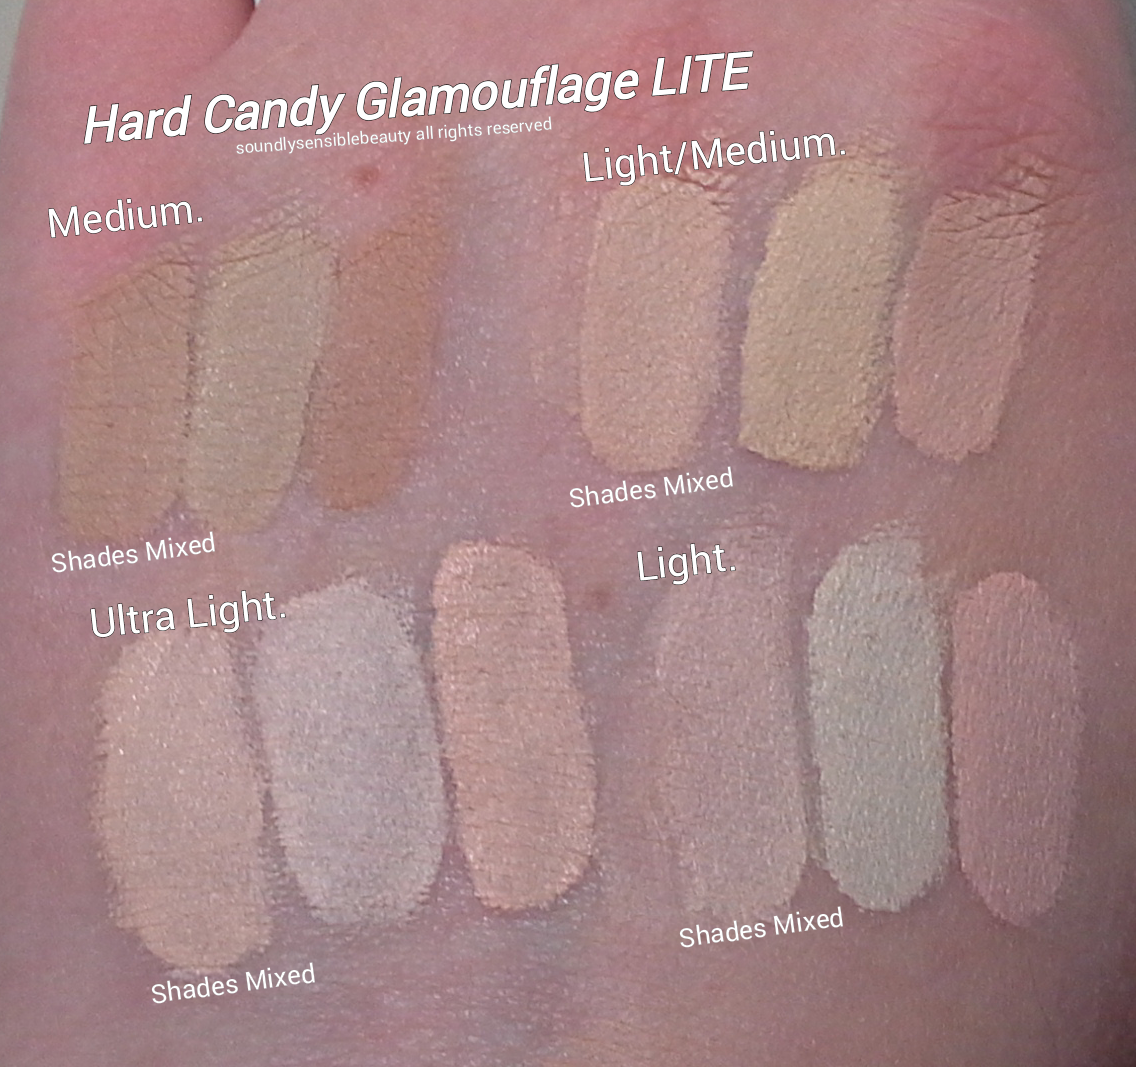 Hard Candy LITE Glamoflauge Concealer Duo; Review & Swatches of Shades  Light/Medium, Light, Ultra Light